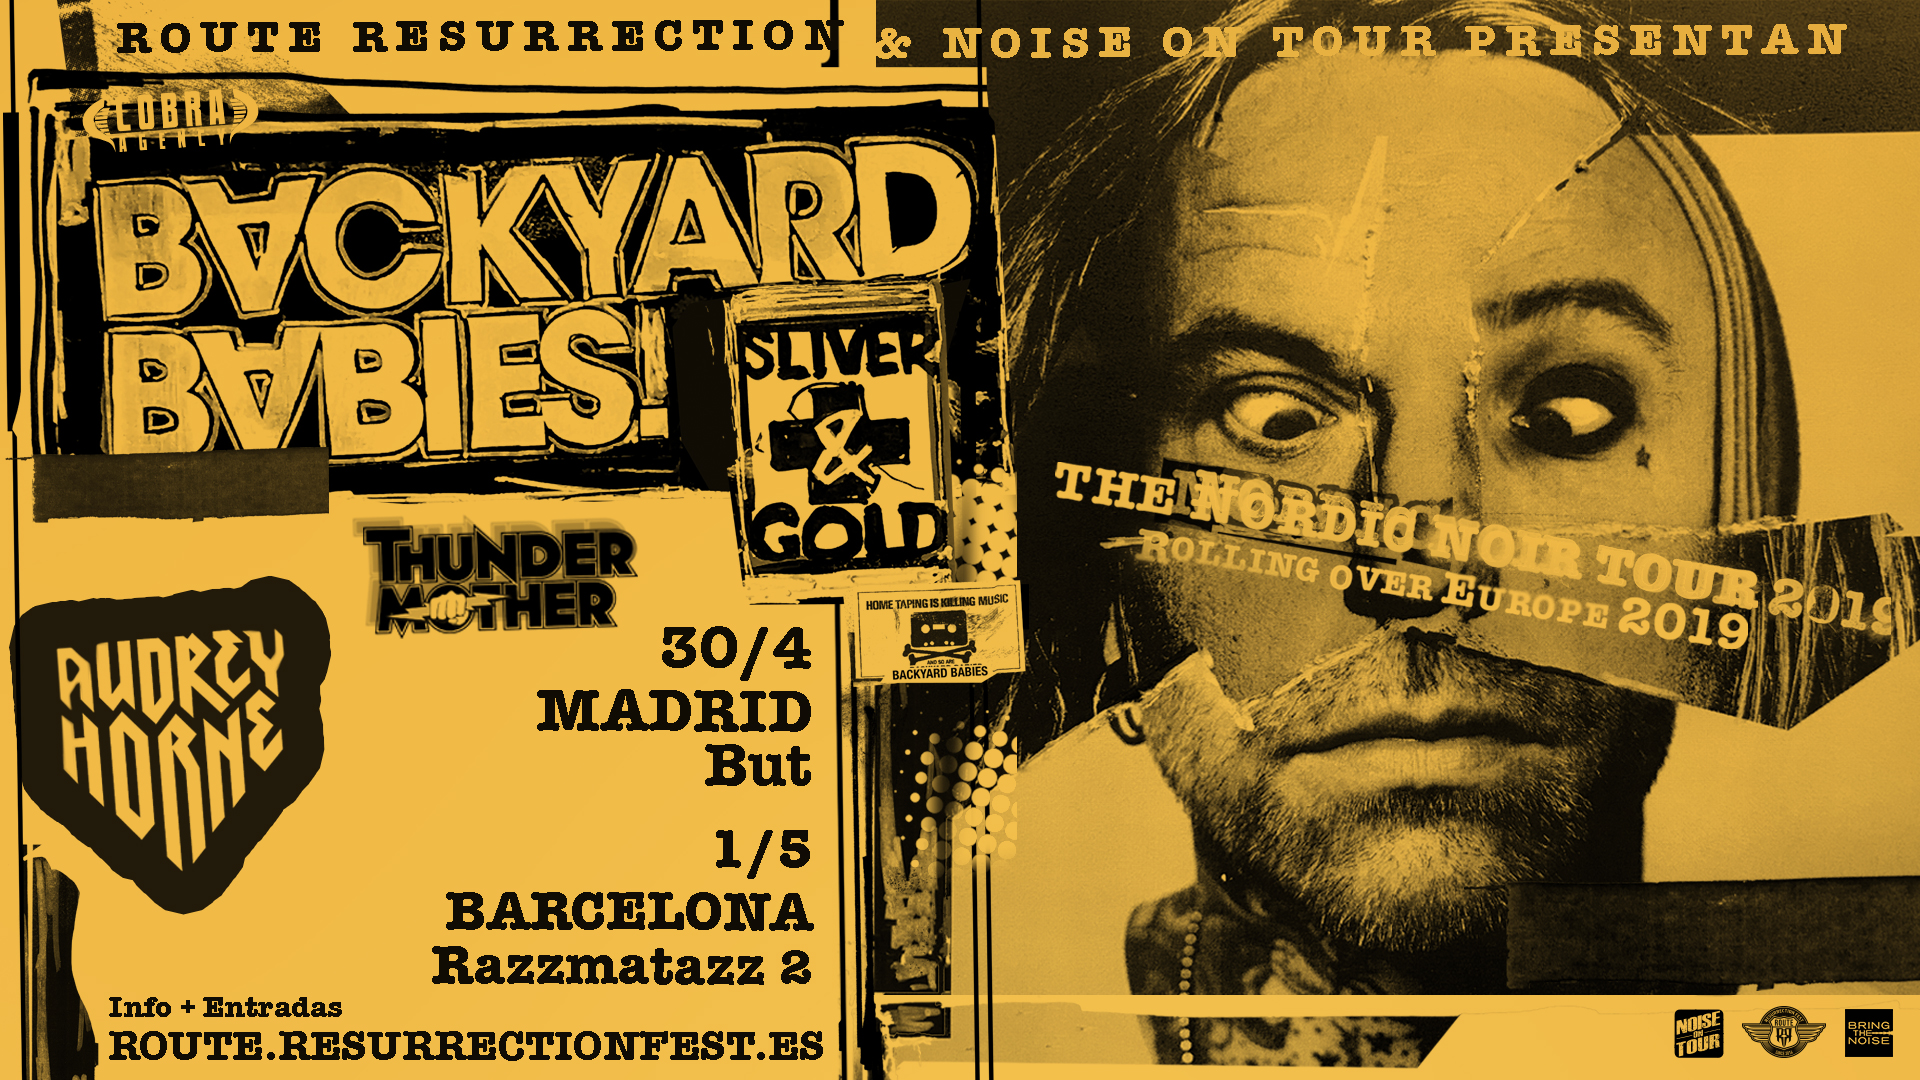 Route Resurrection Fest 2019 - Backyard Babies - Event